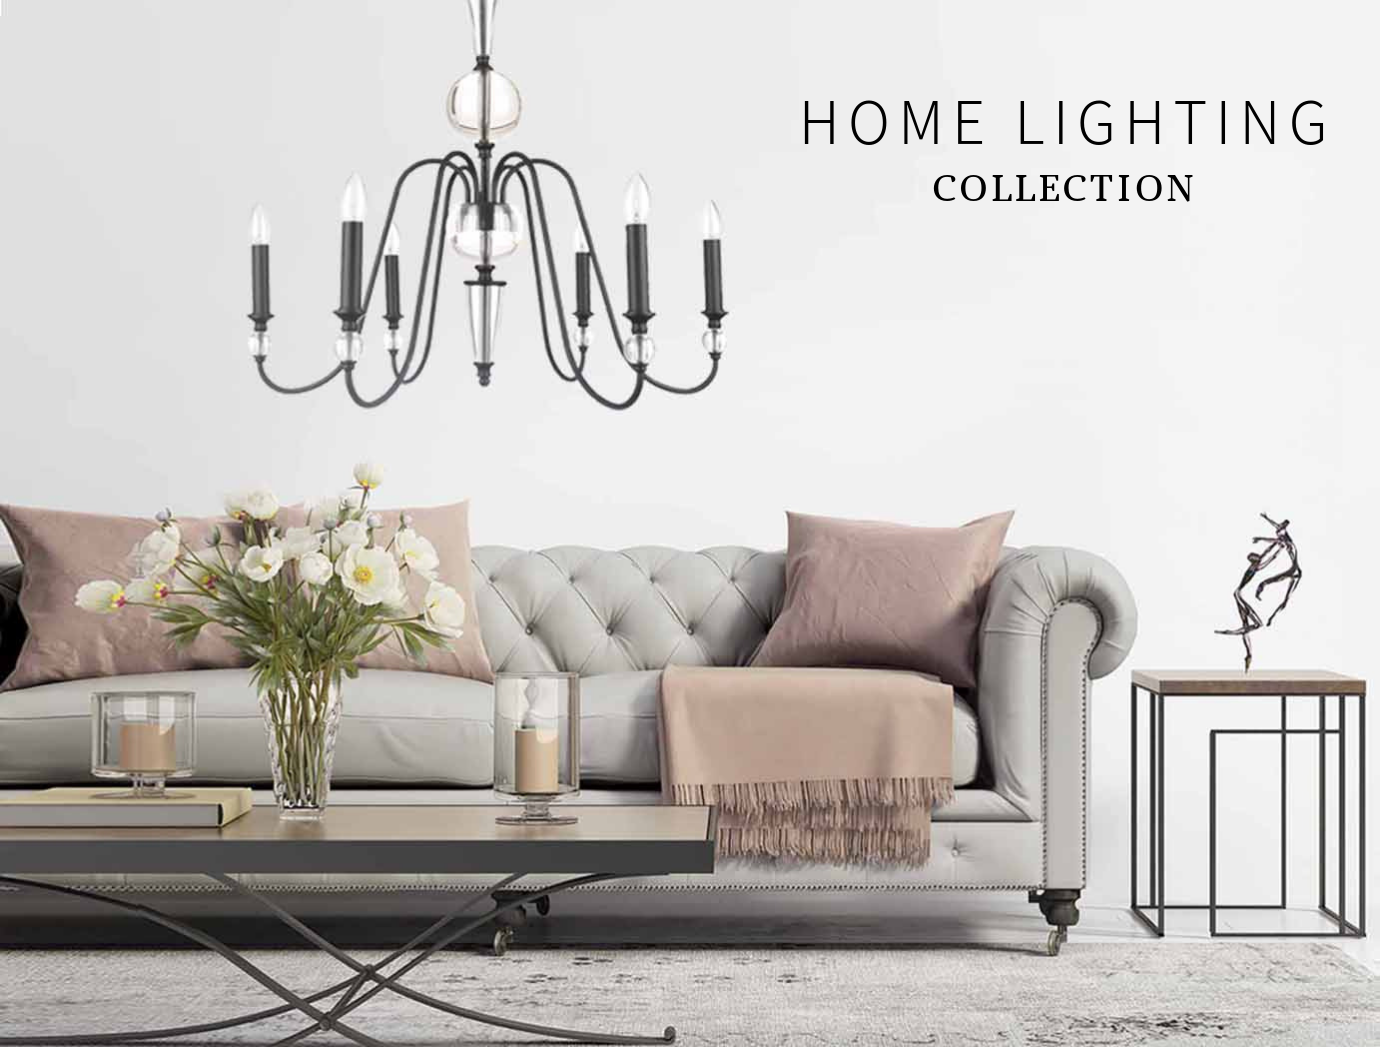 See all Home Lighting Products cover image